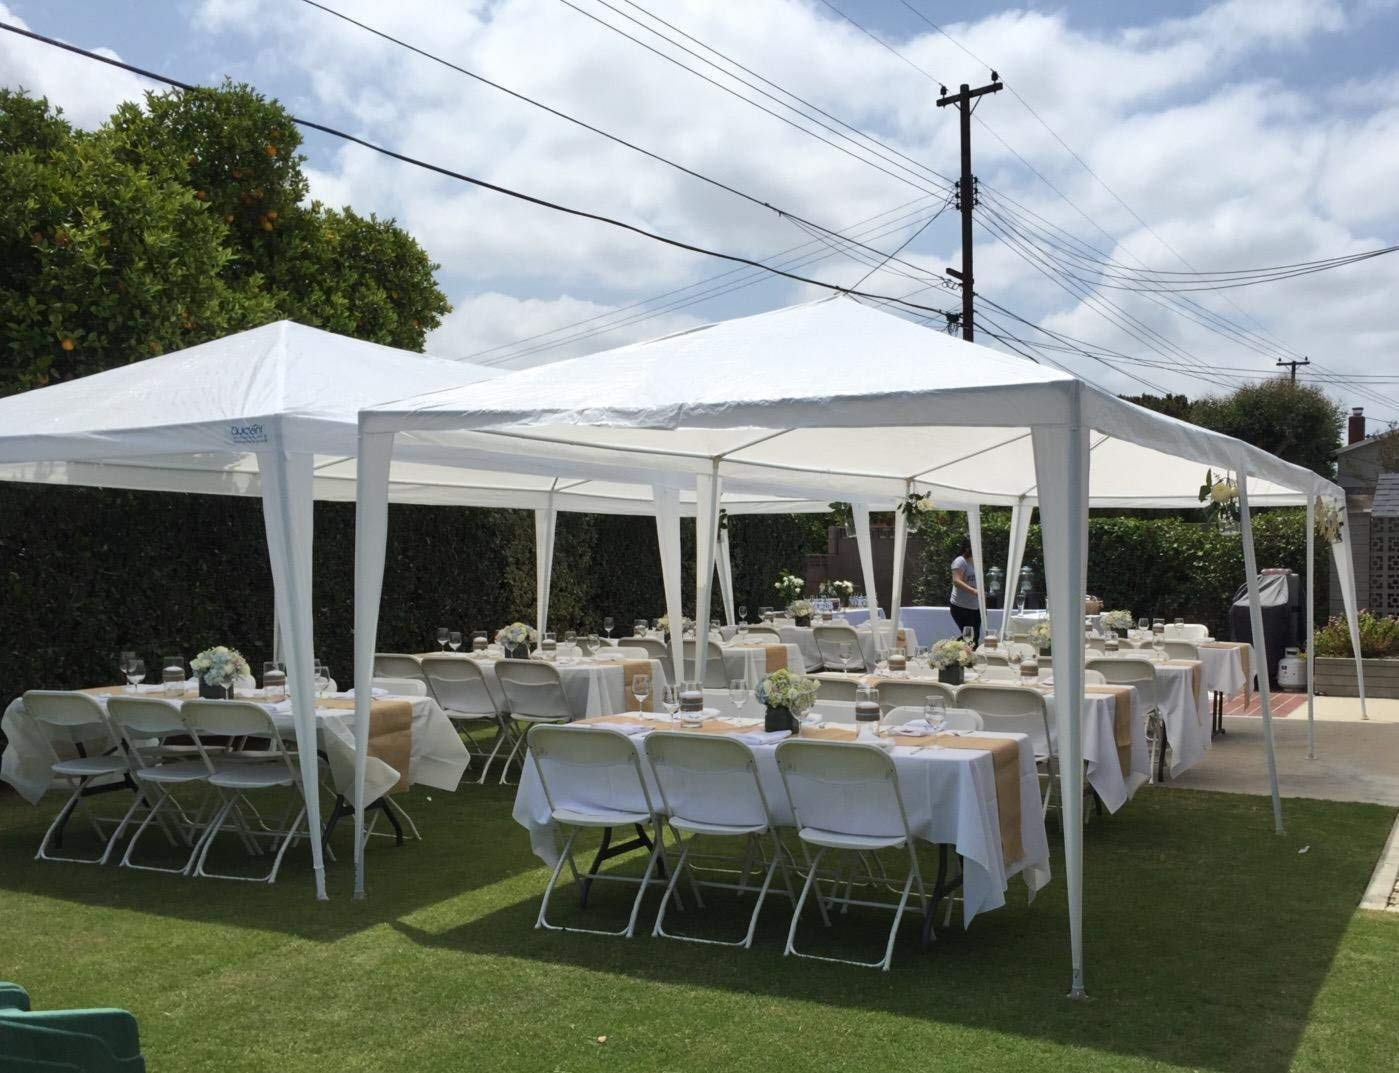 Teekland 10'x30' Outdoor Canopy Party Wedding Tent,Sunshade Shelter,Outdoor Gazebo Pavilion with 8 Removable Sidewalls Upgraded Thicken Steel Tube (10' x 30' / 8 Removable Sidewalls-1) by Teekland (Image #6)